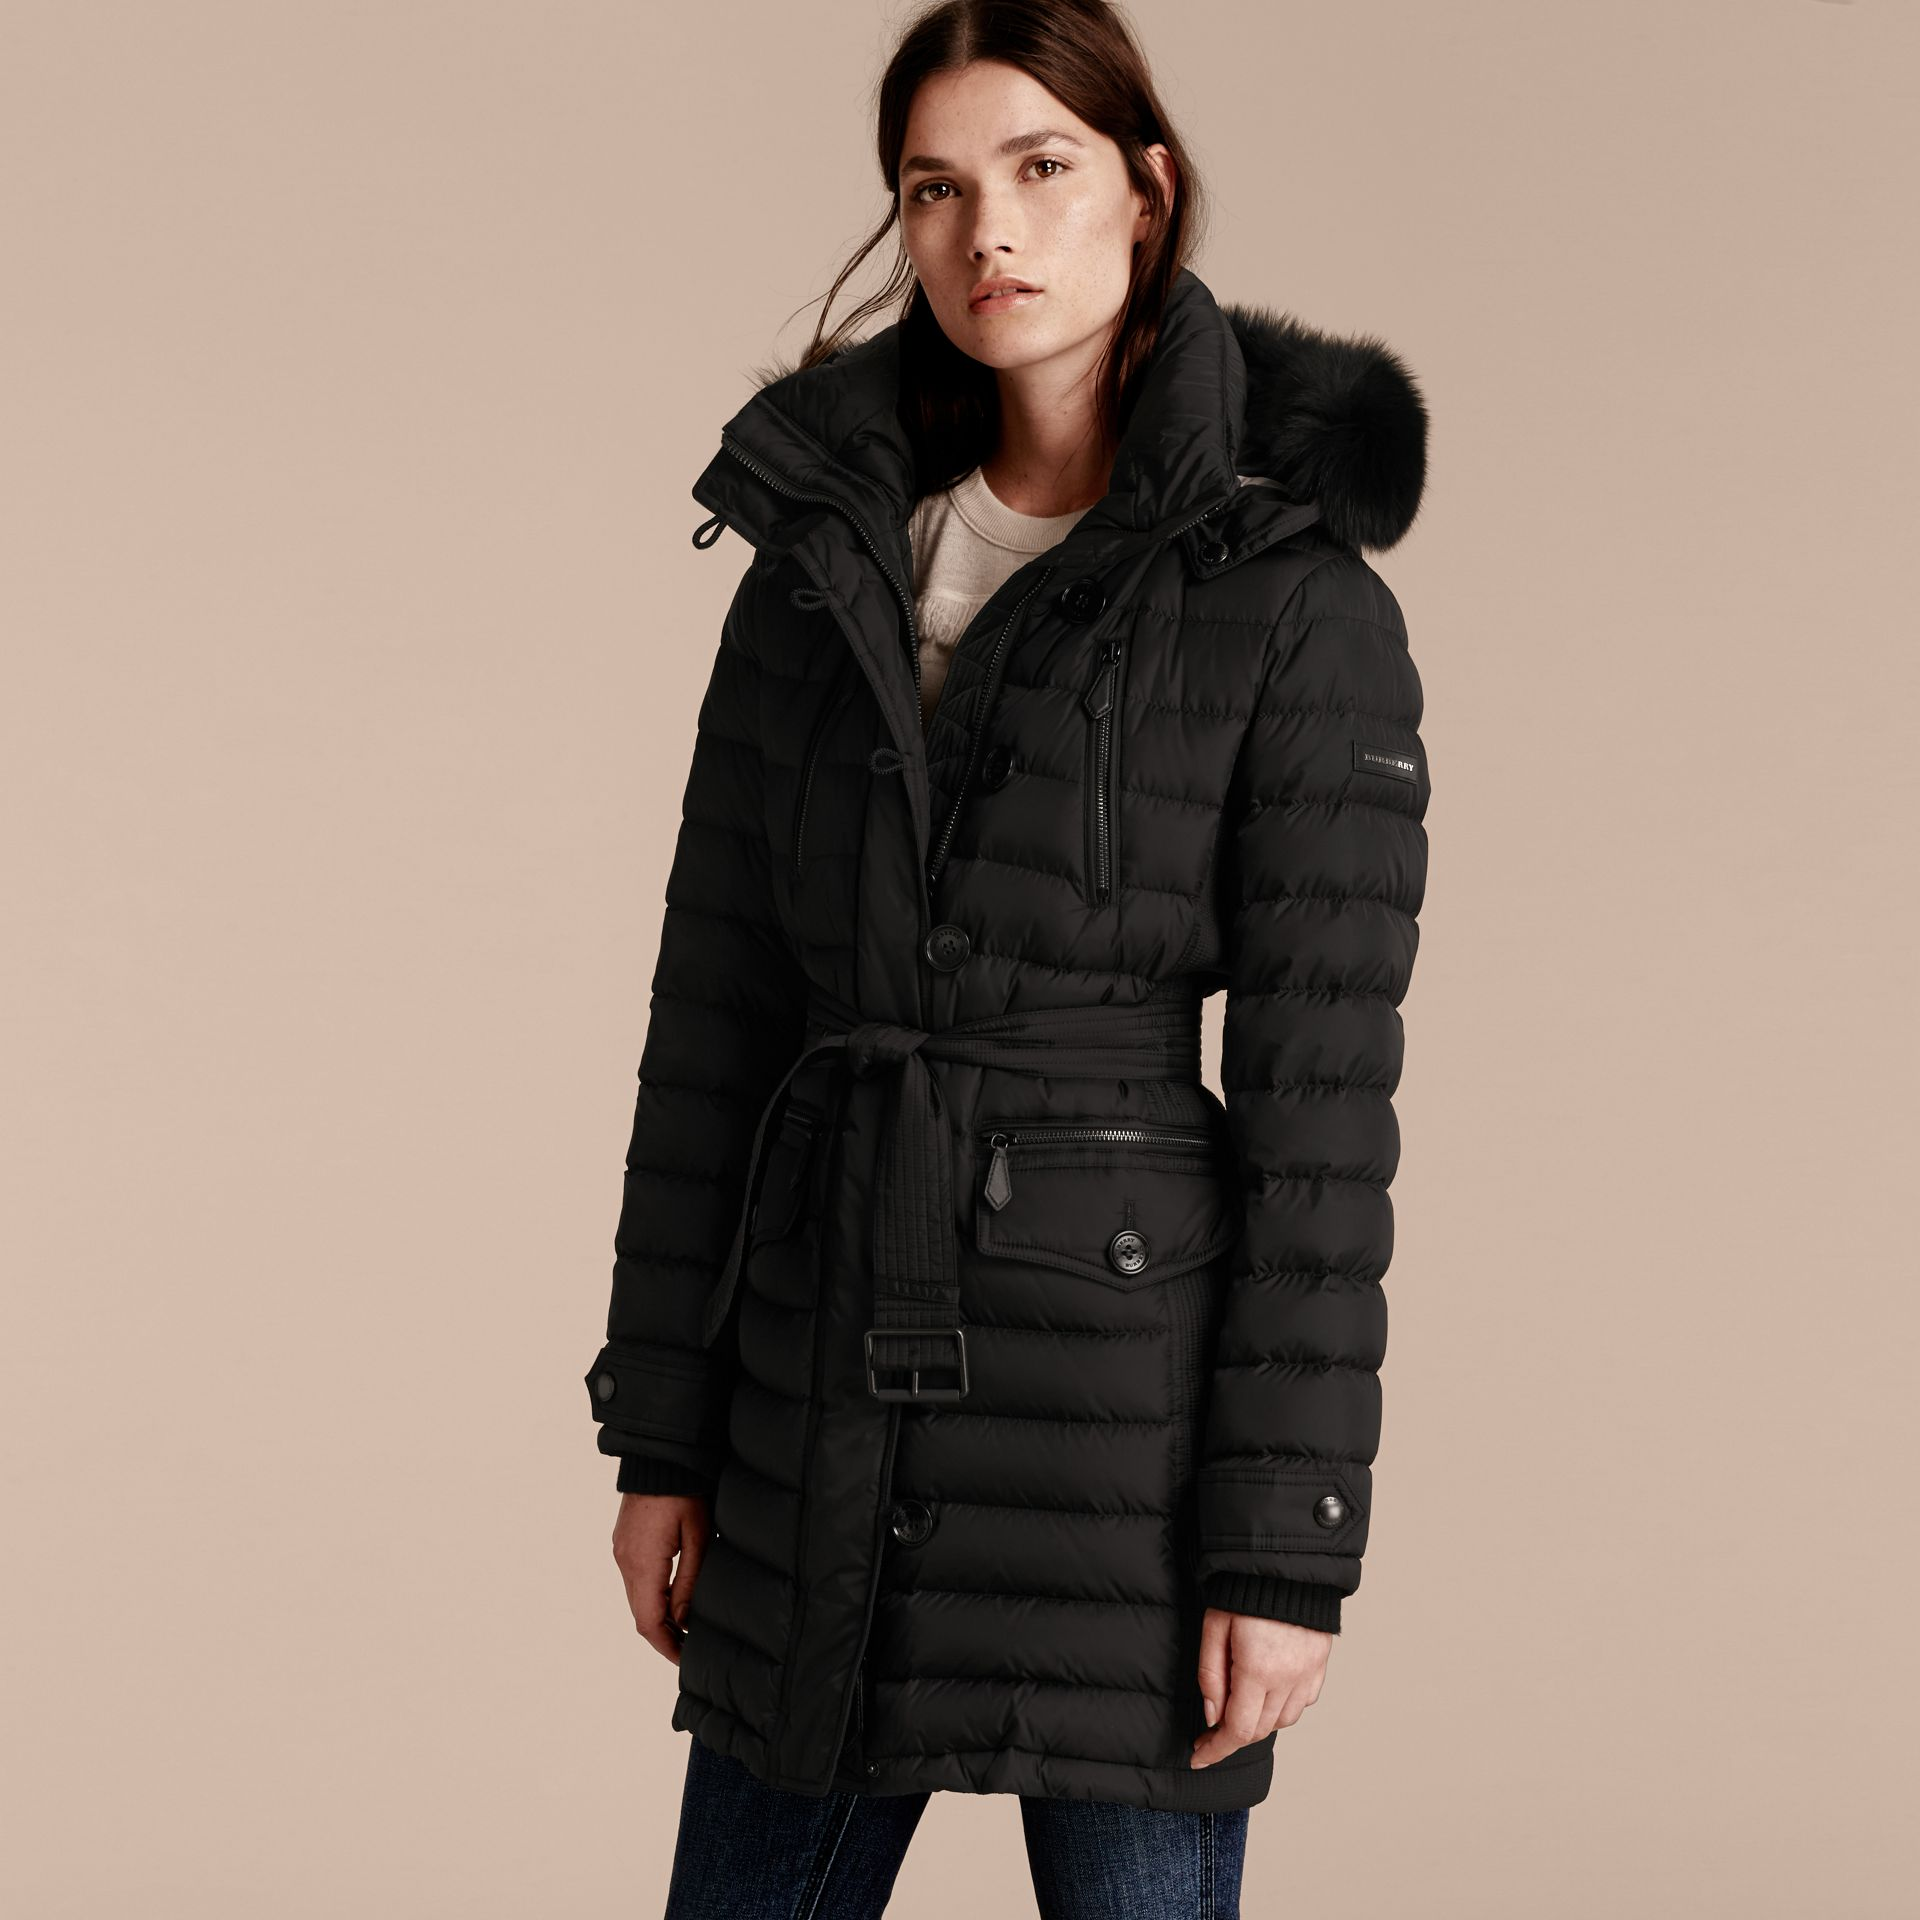 Black Down-filled Parka with Fur Trim Black - gallery image 5